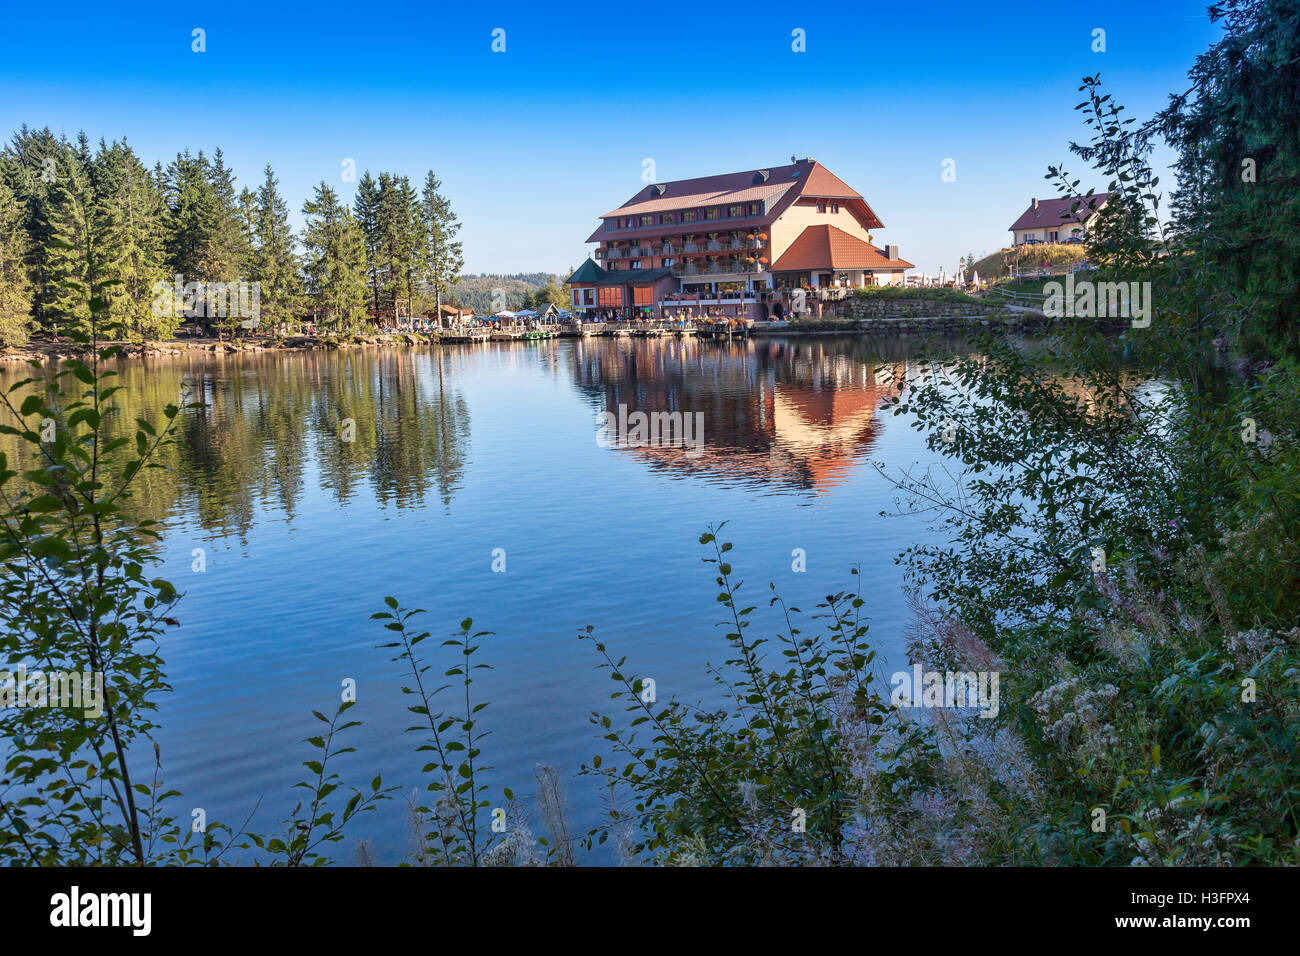 View at forest and a Hotel at lake Mummelsee in Southern Germany Black Forest, Baden-Wuerttemberg, Germany, Europe - Stock Image